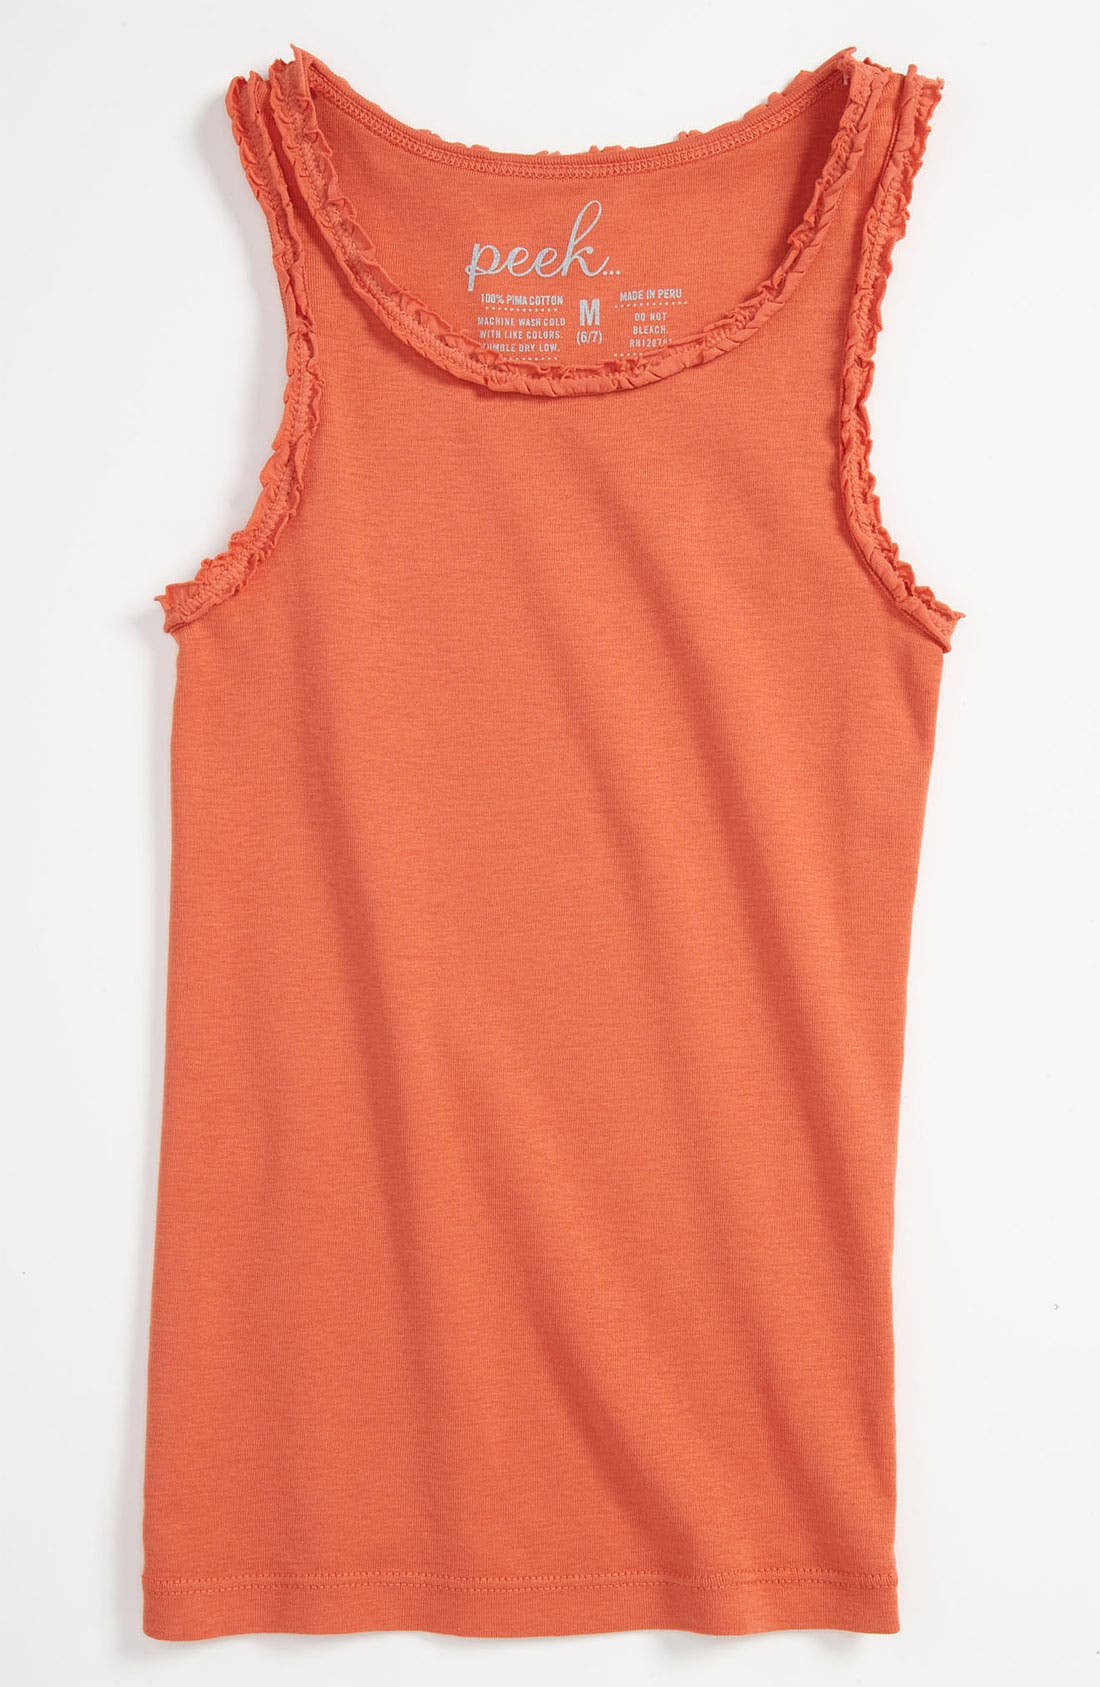 Main Image - Peek 'Maribel' Tank Top (Big Girls)